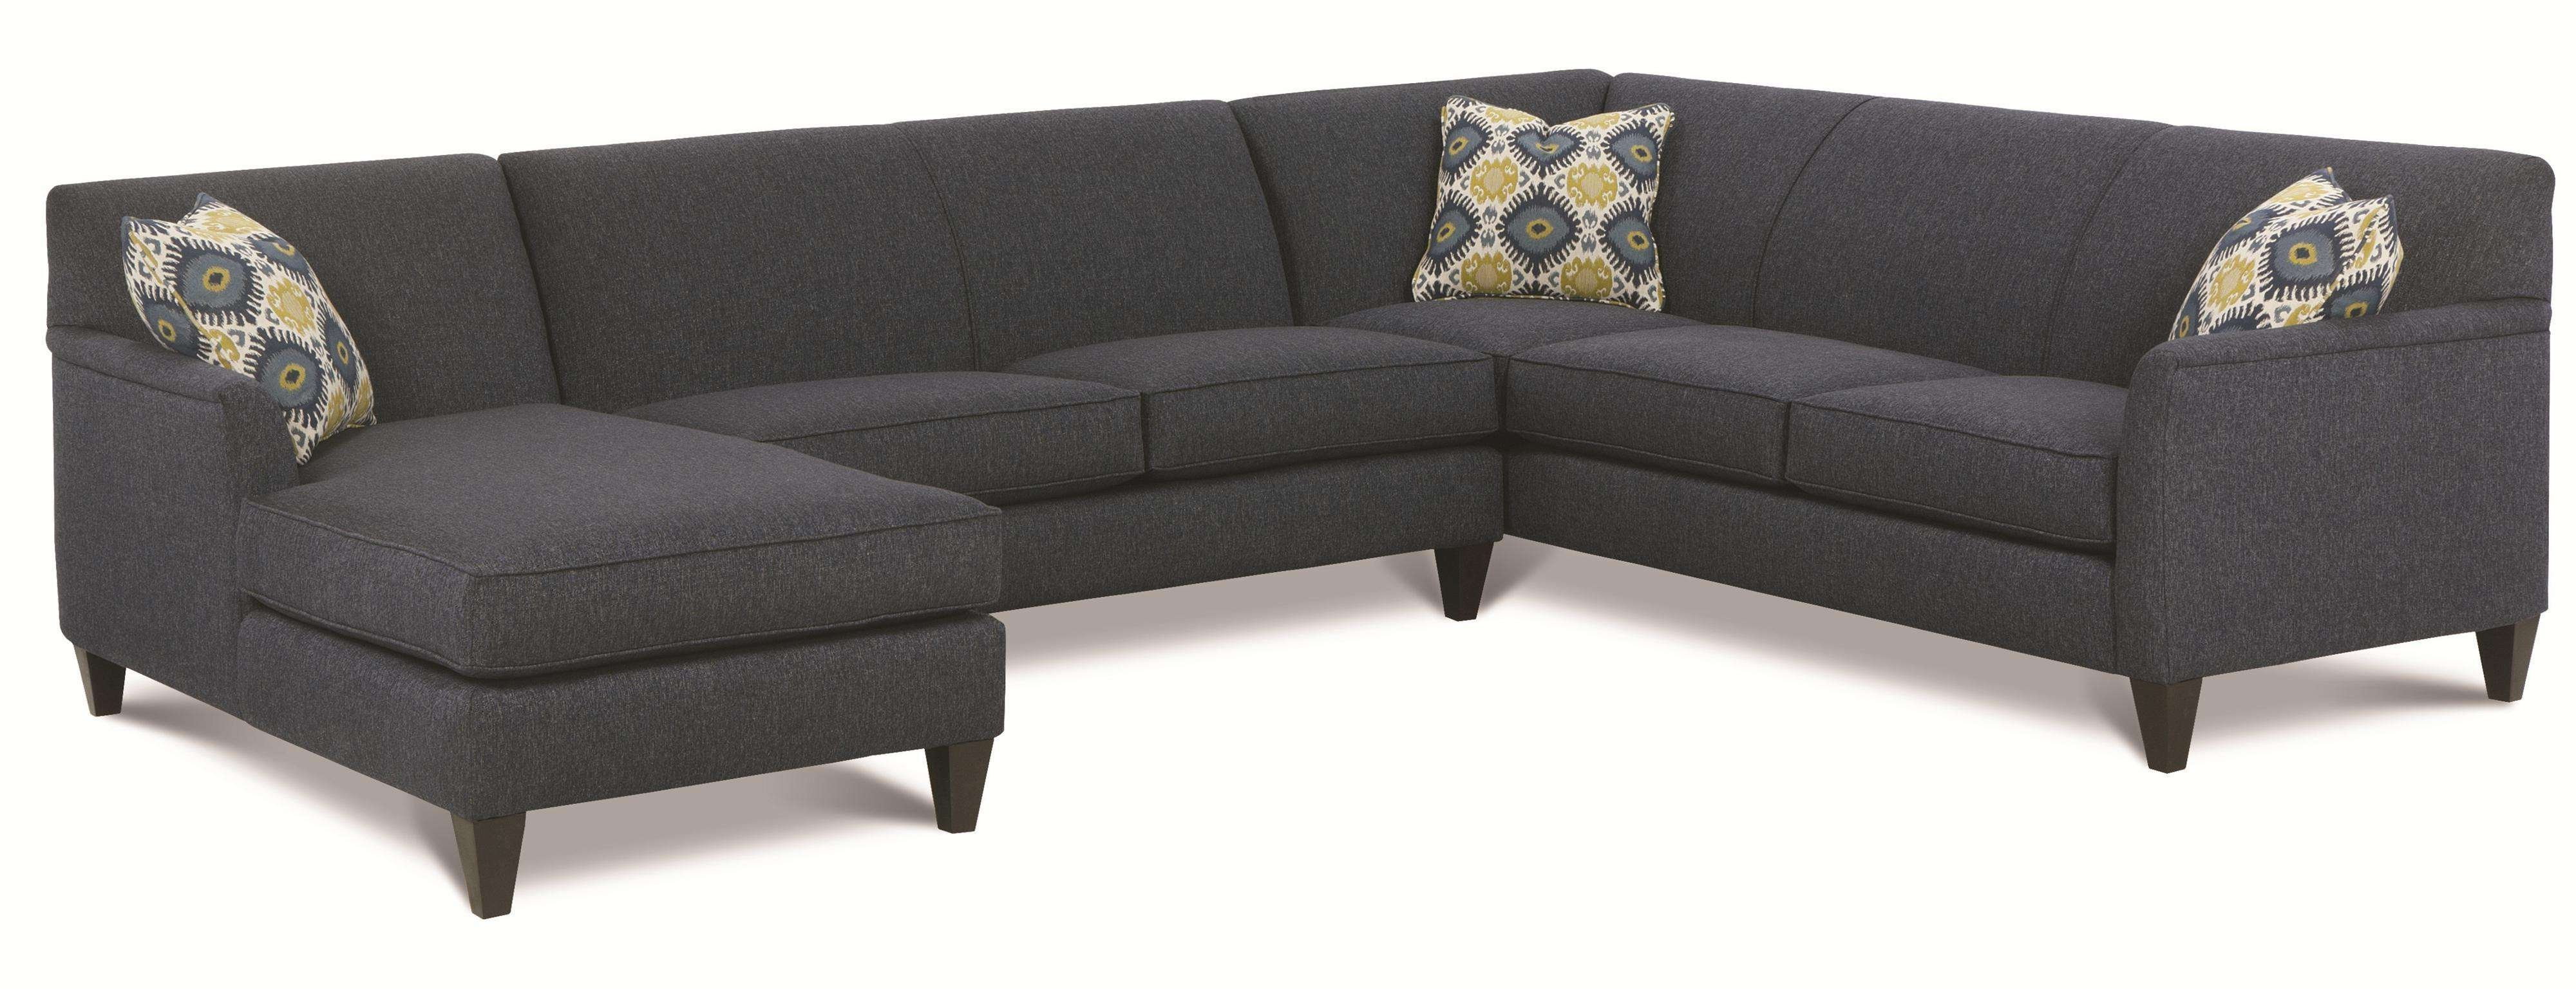 Russiandesignshow Intended For Aquarius Dark Grey 2 Piece Sectionals With Laf Chaise (Gallery 13 of 20)